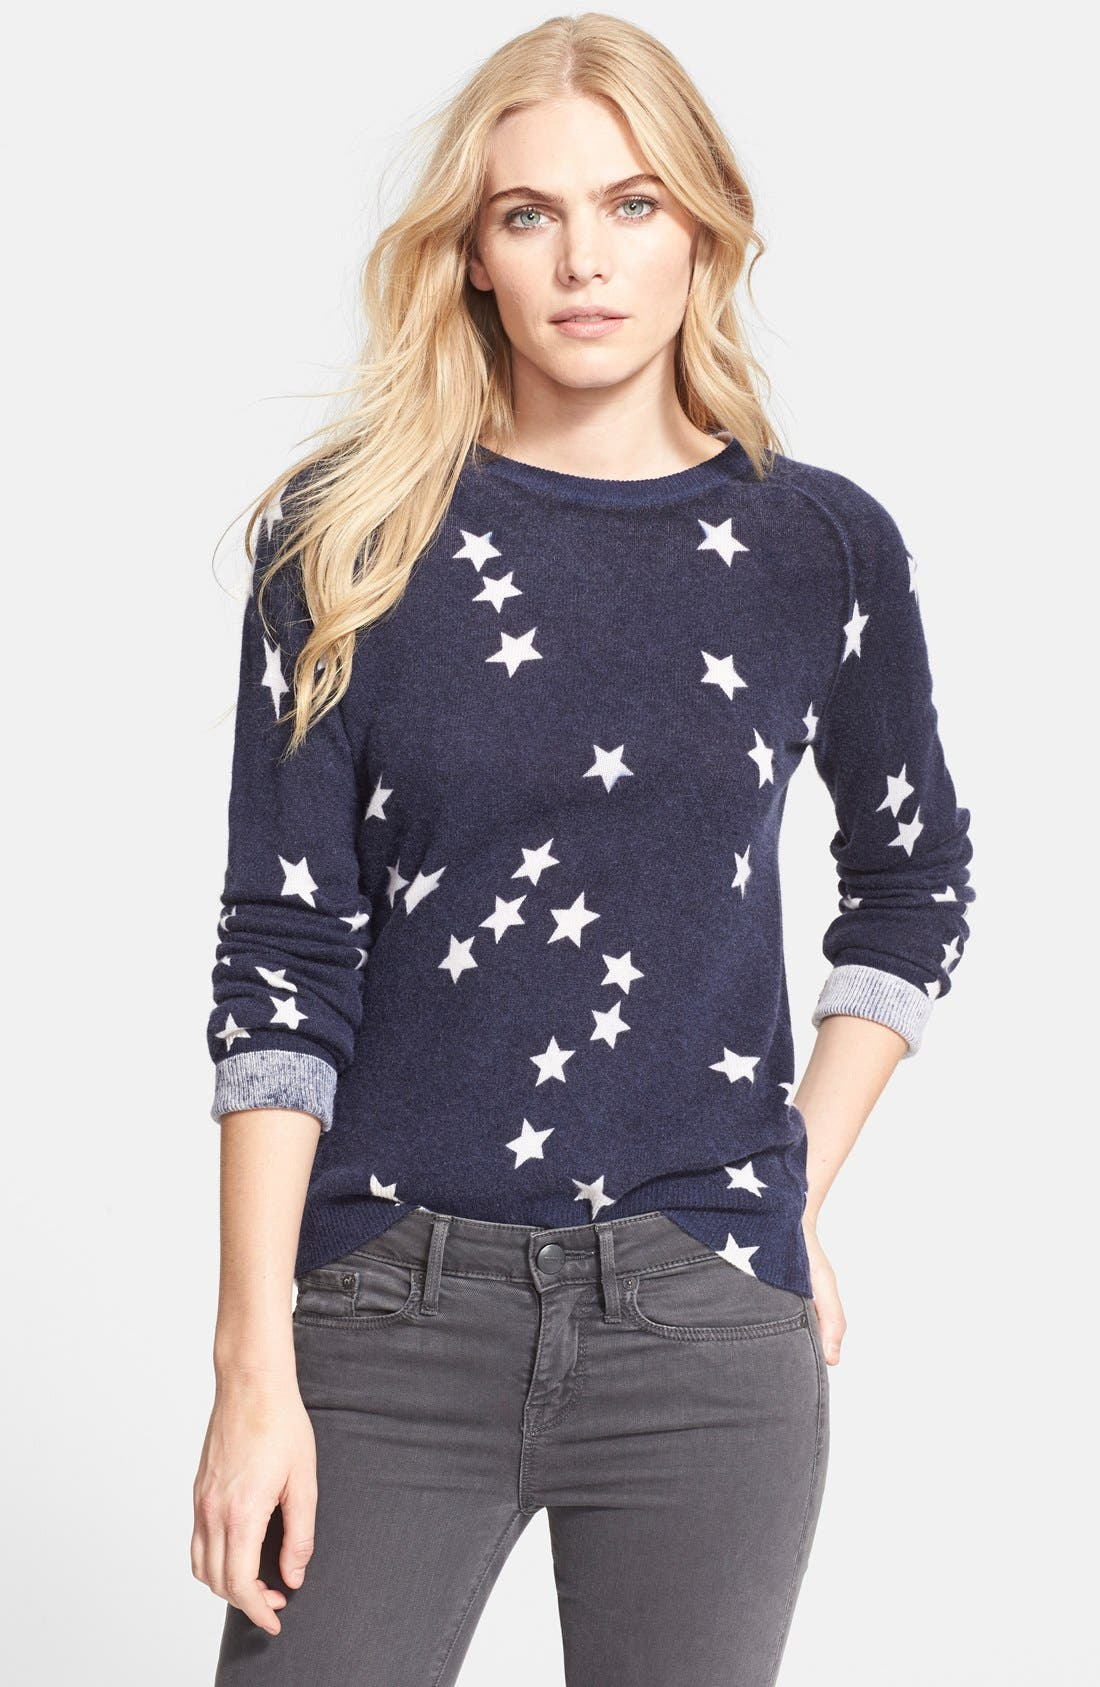 Alternate Image 1 Selected - Equipment 'Sloan' Star Pattern Cashmere Sweater